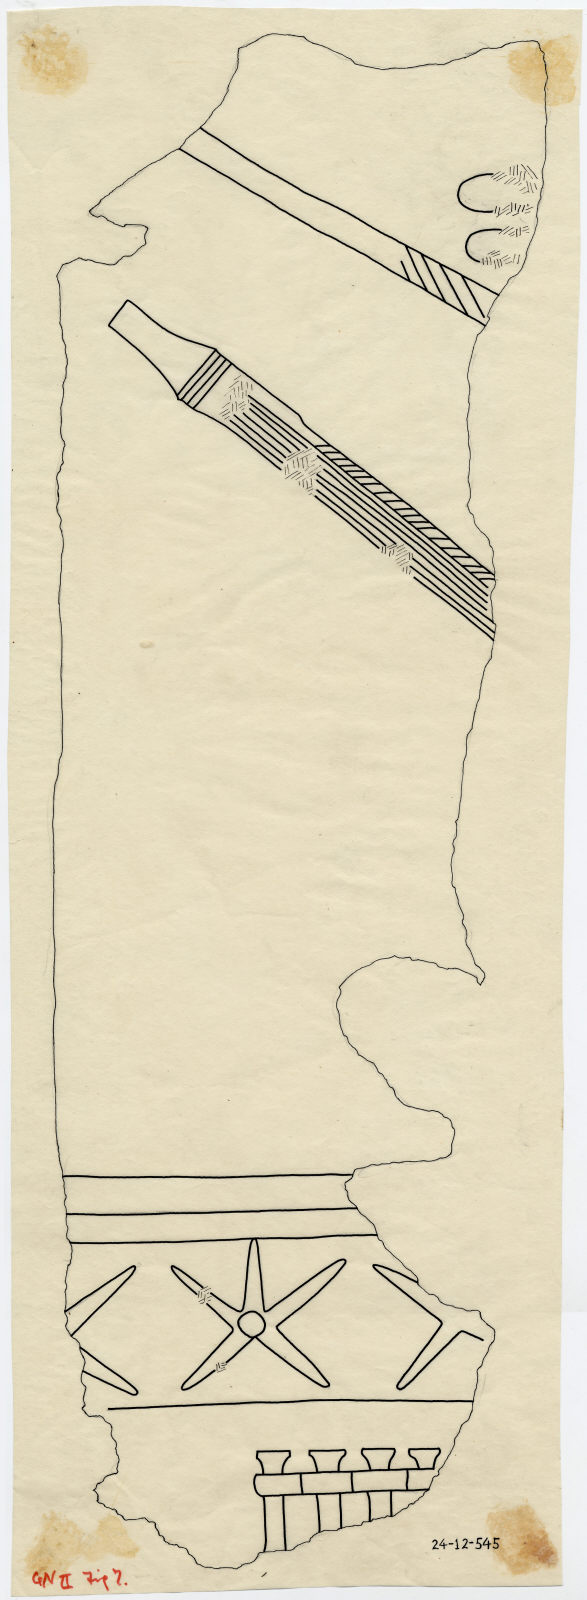 Drawings: Avenue G 1: fragment of relief